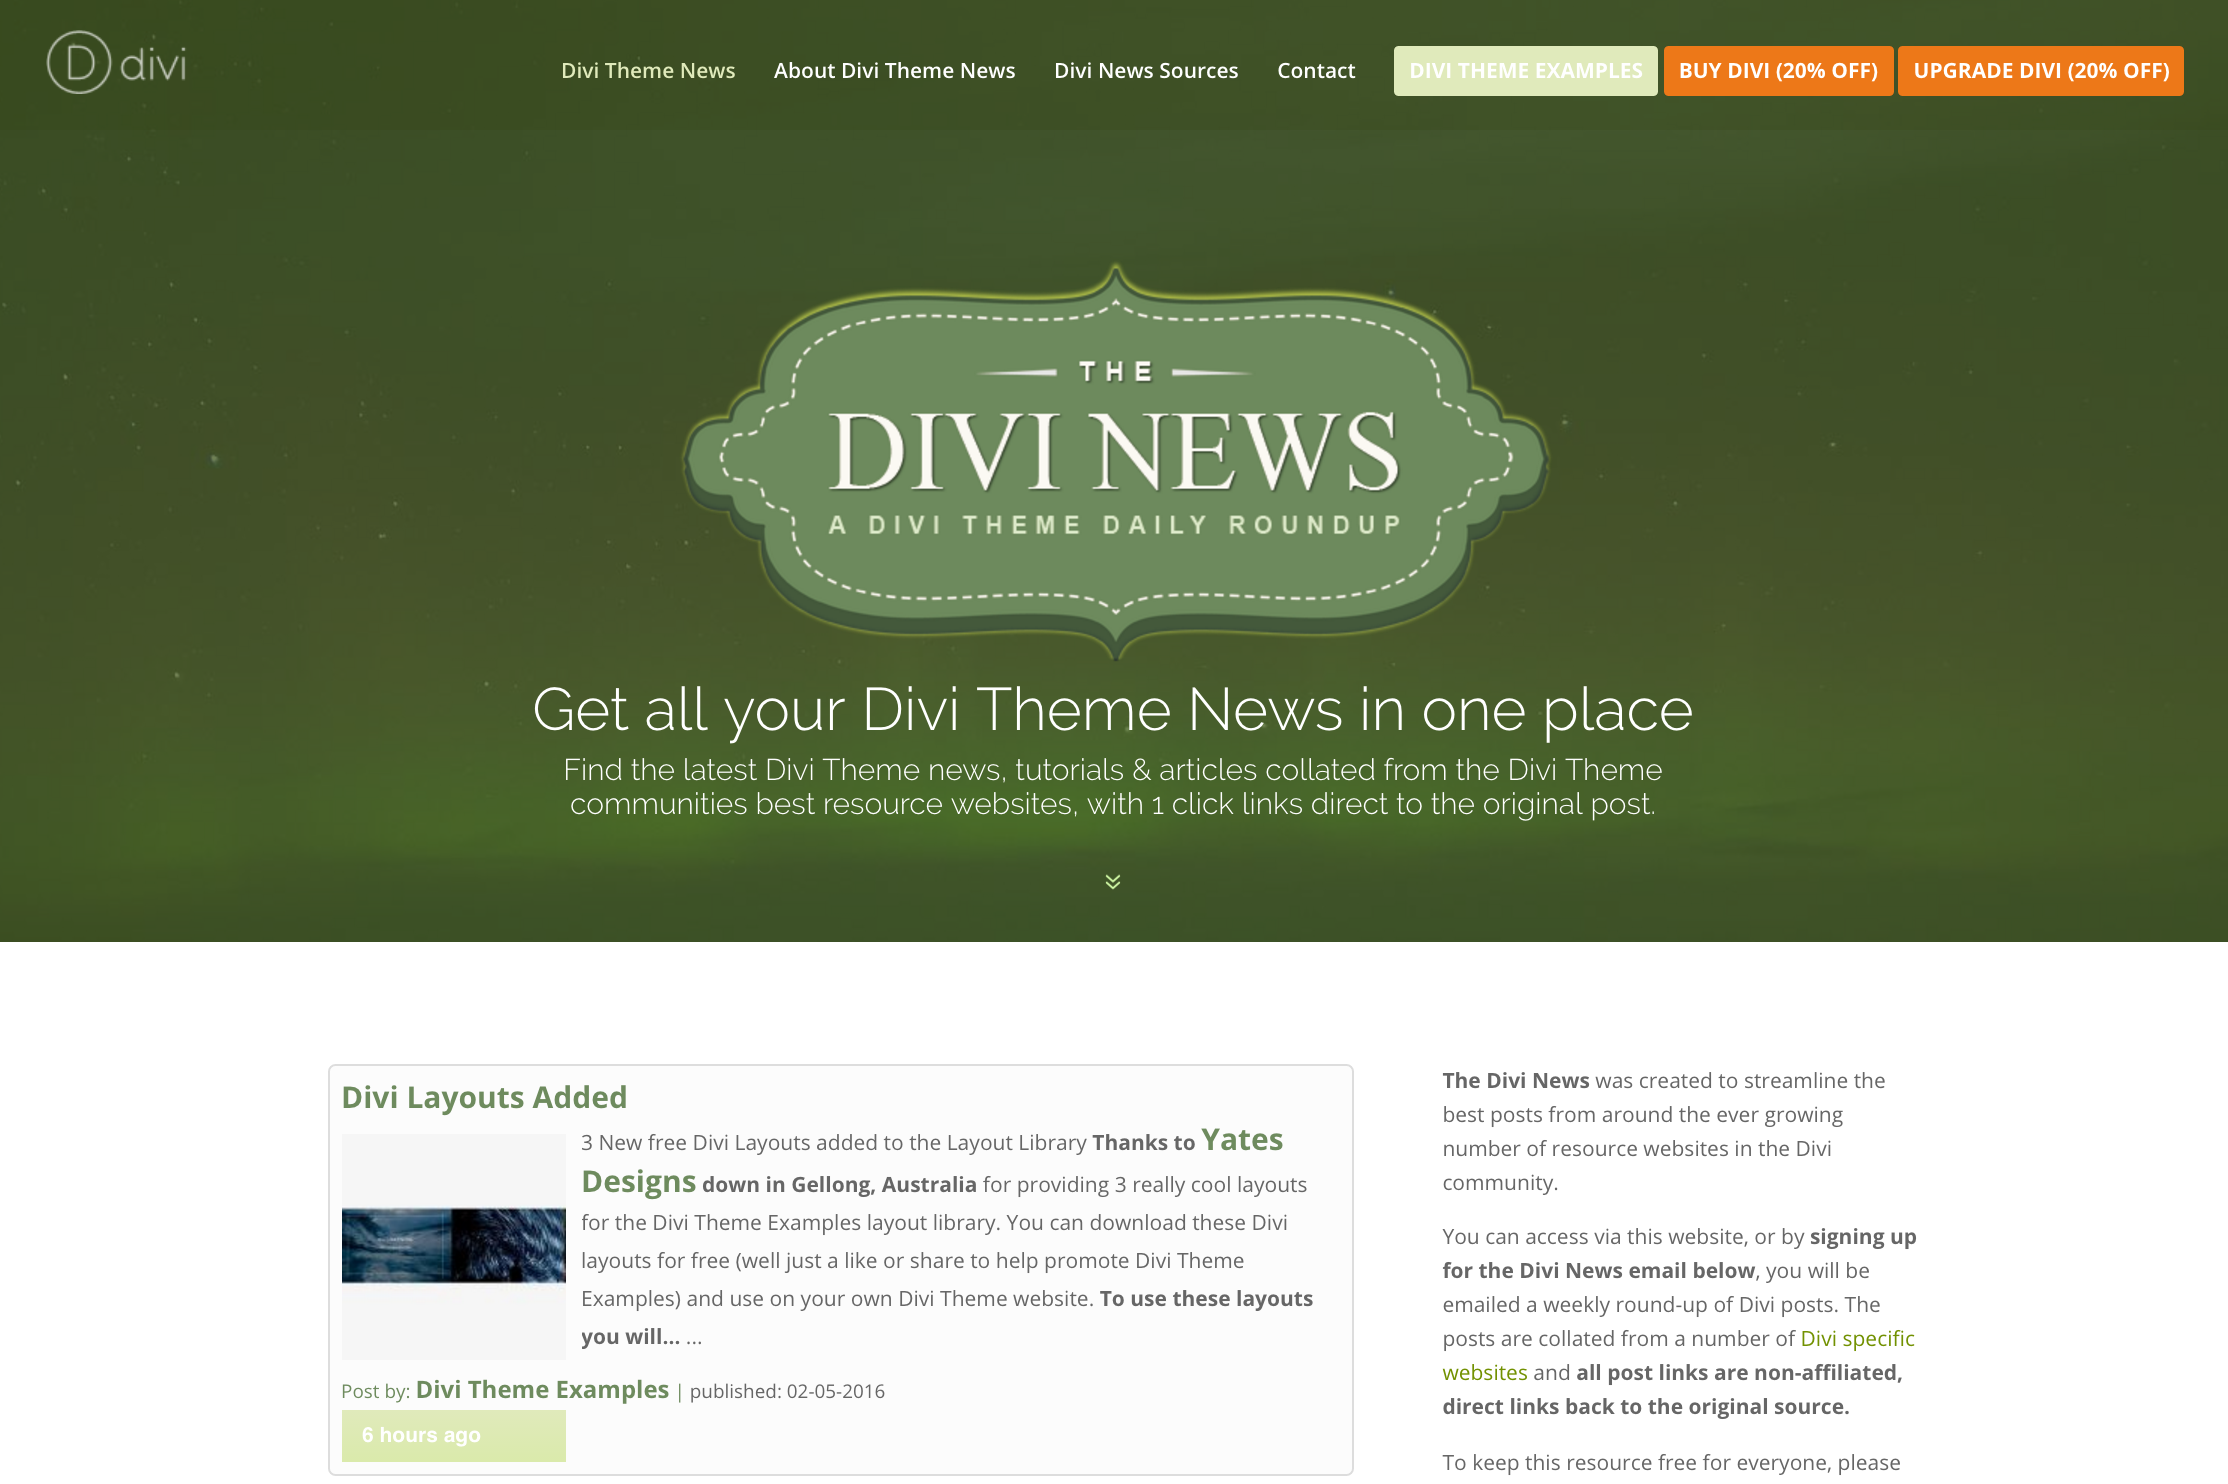 showcase-divi-theme-news